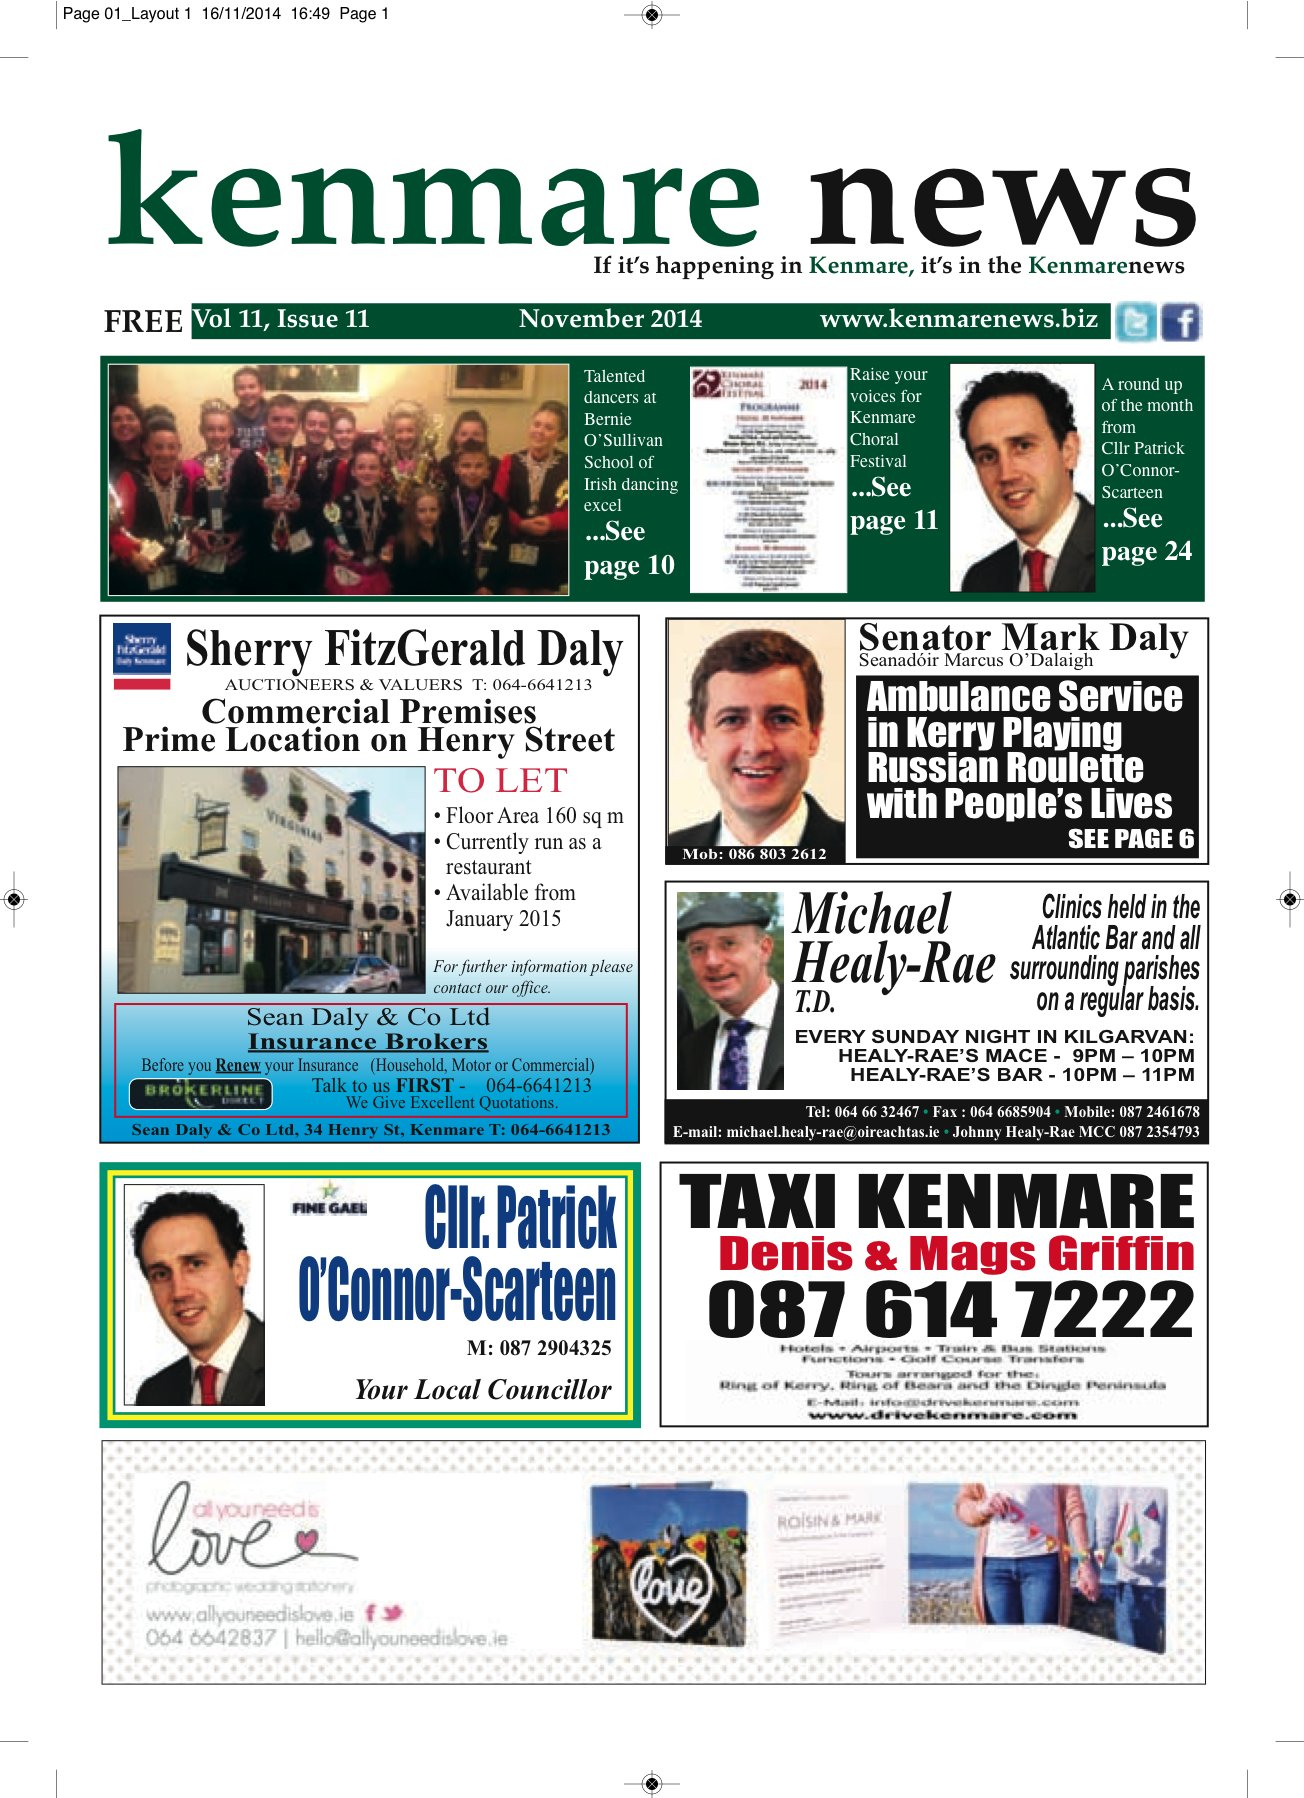 Kenmare News Nov 2014_Web